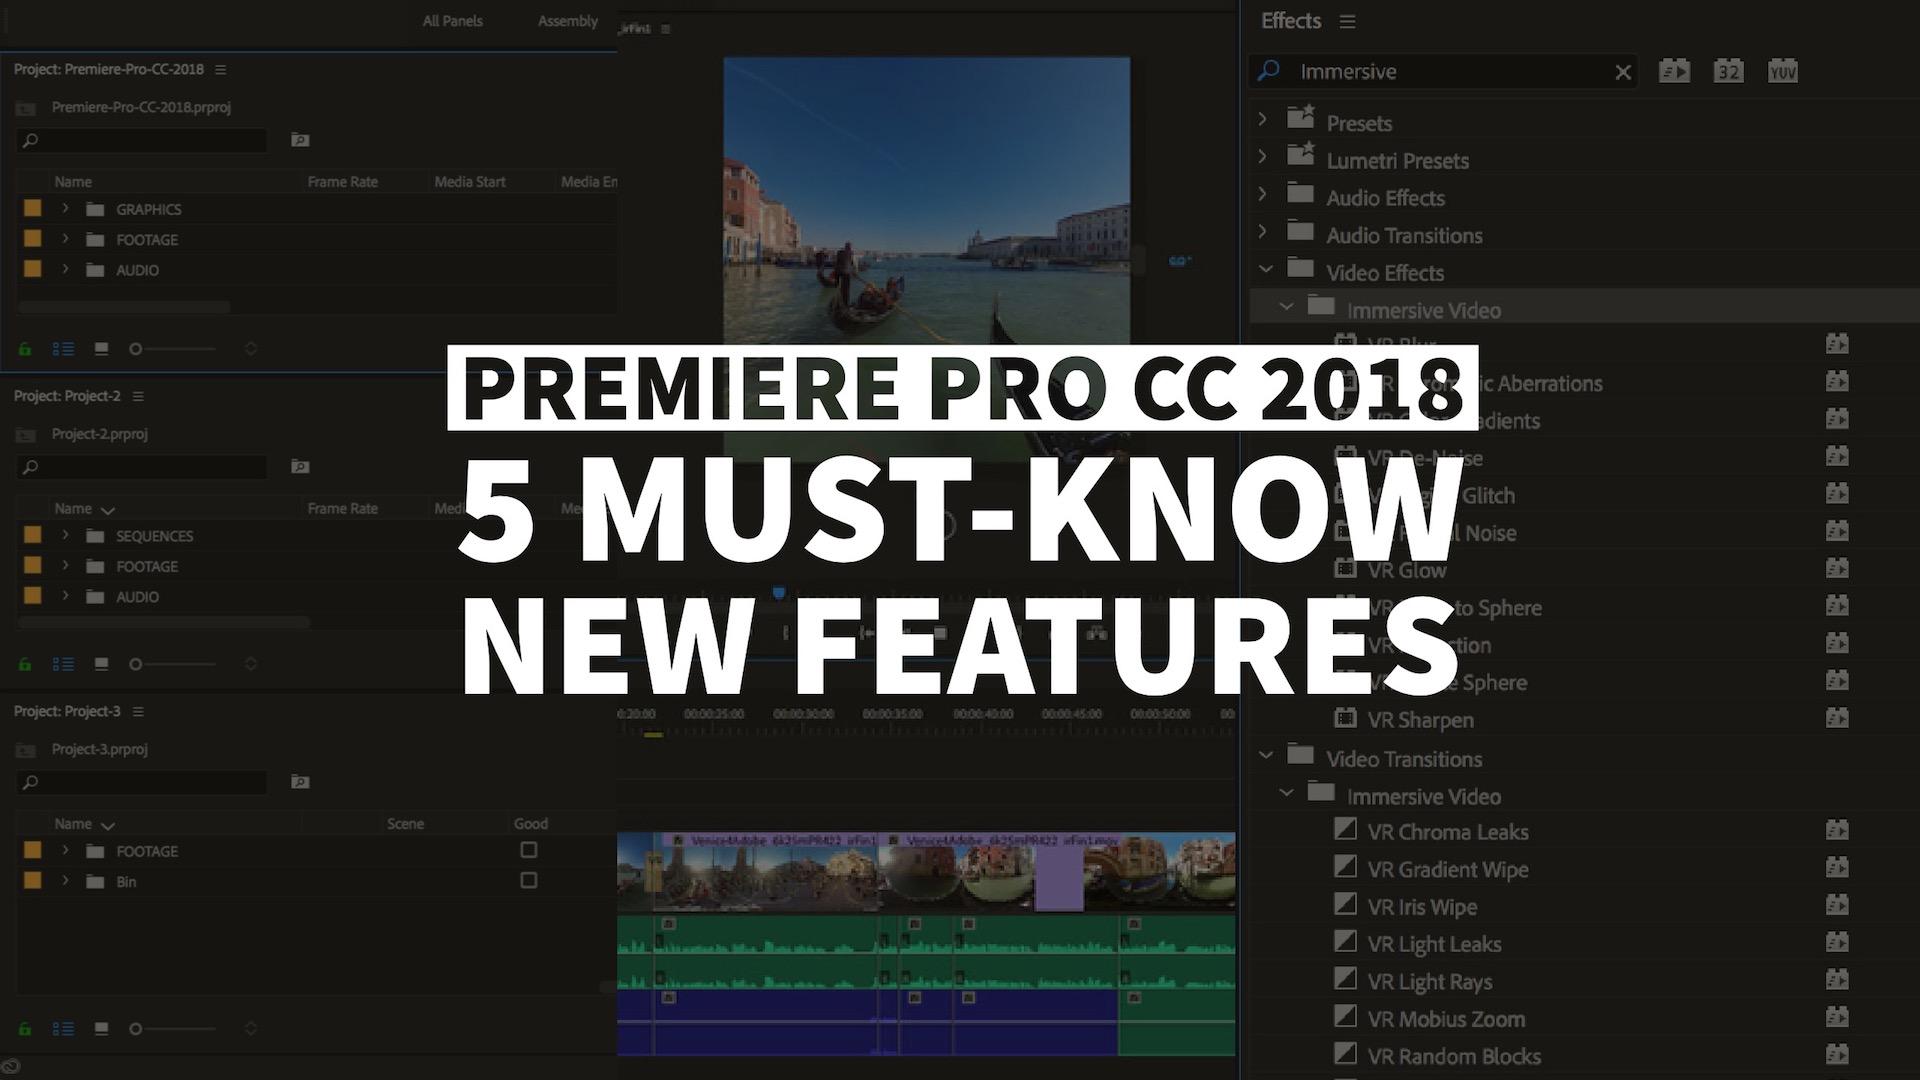 Premiere Pro CC 2018 Preview: 5 Must-Know New Features — Premiere Bro